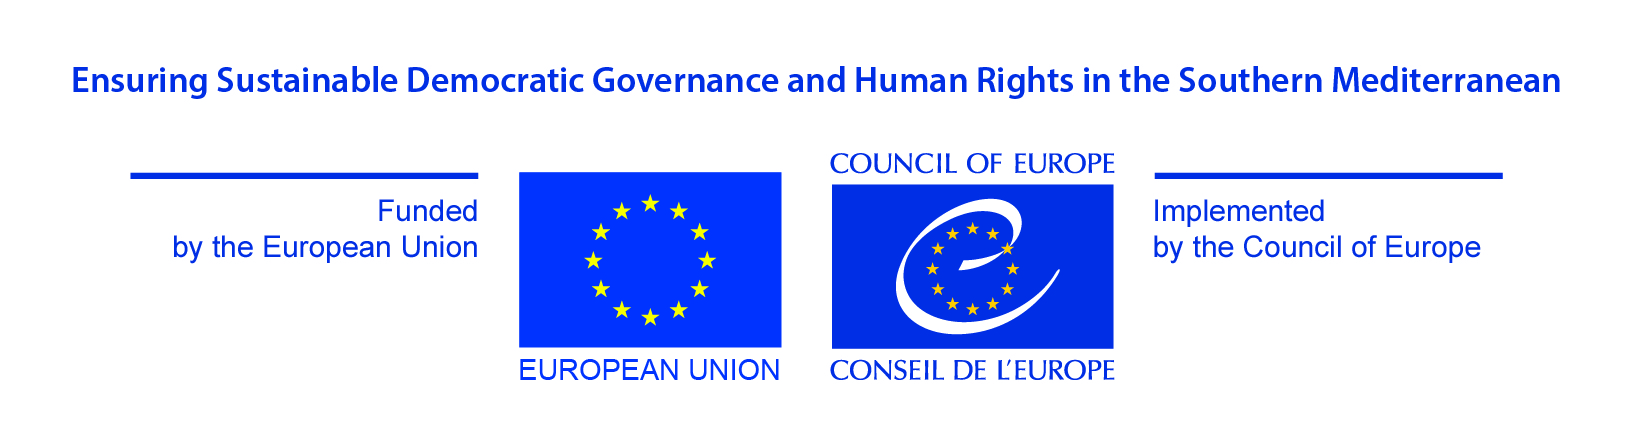 Ensuring Sustainable Democratic Governance and Human Rights in the Southern Mediterranean